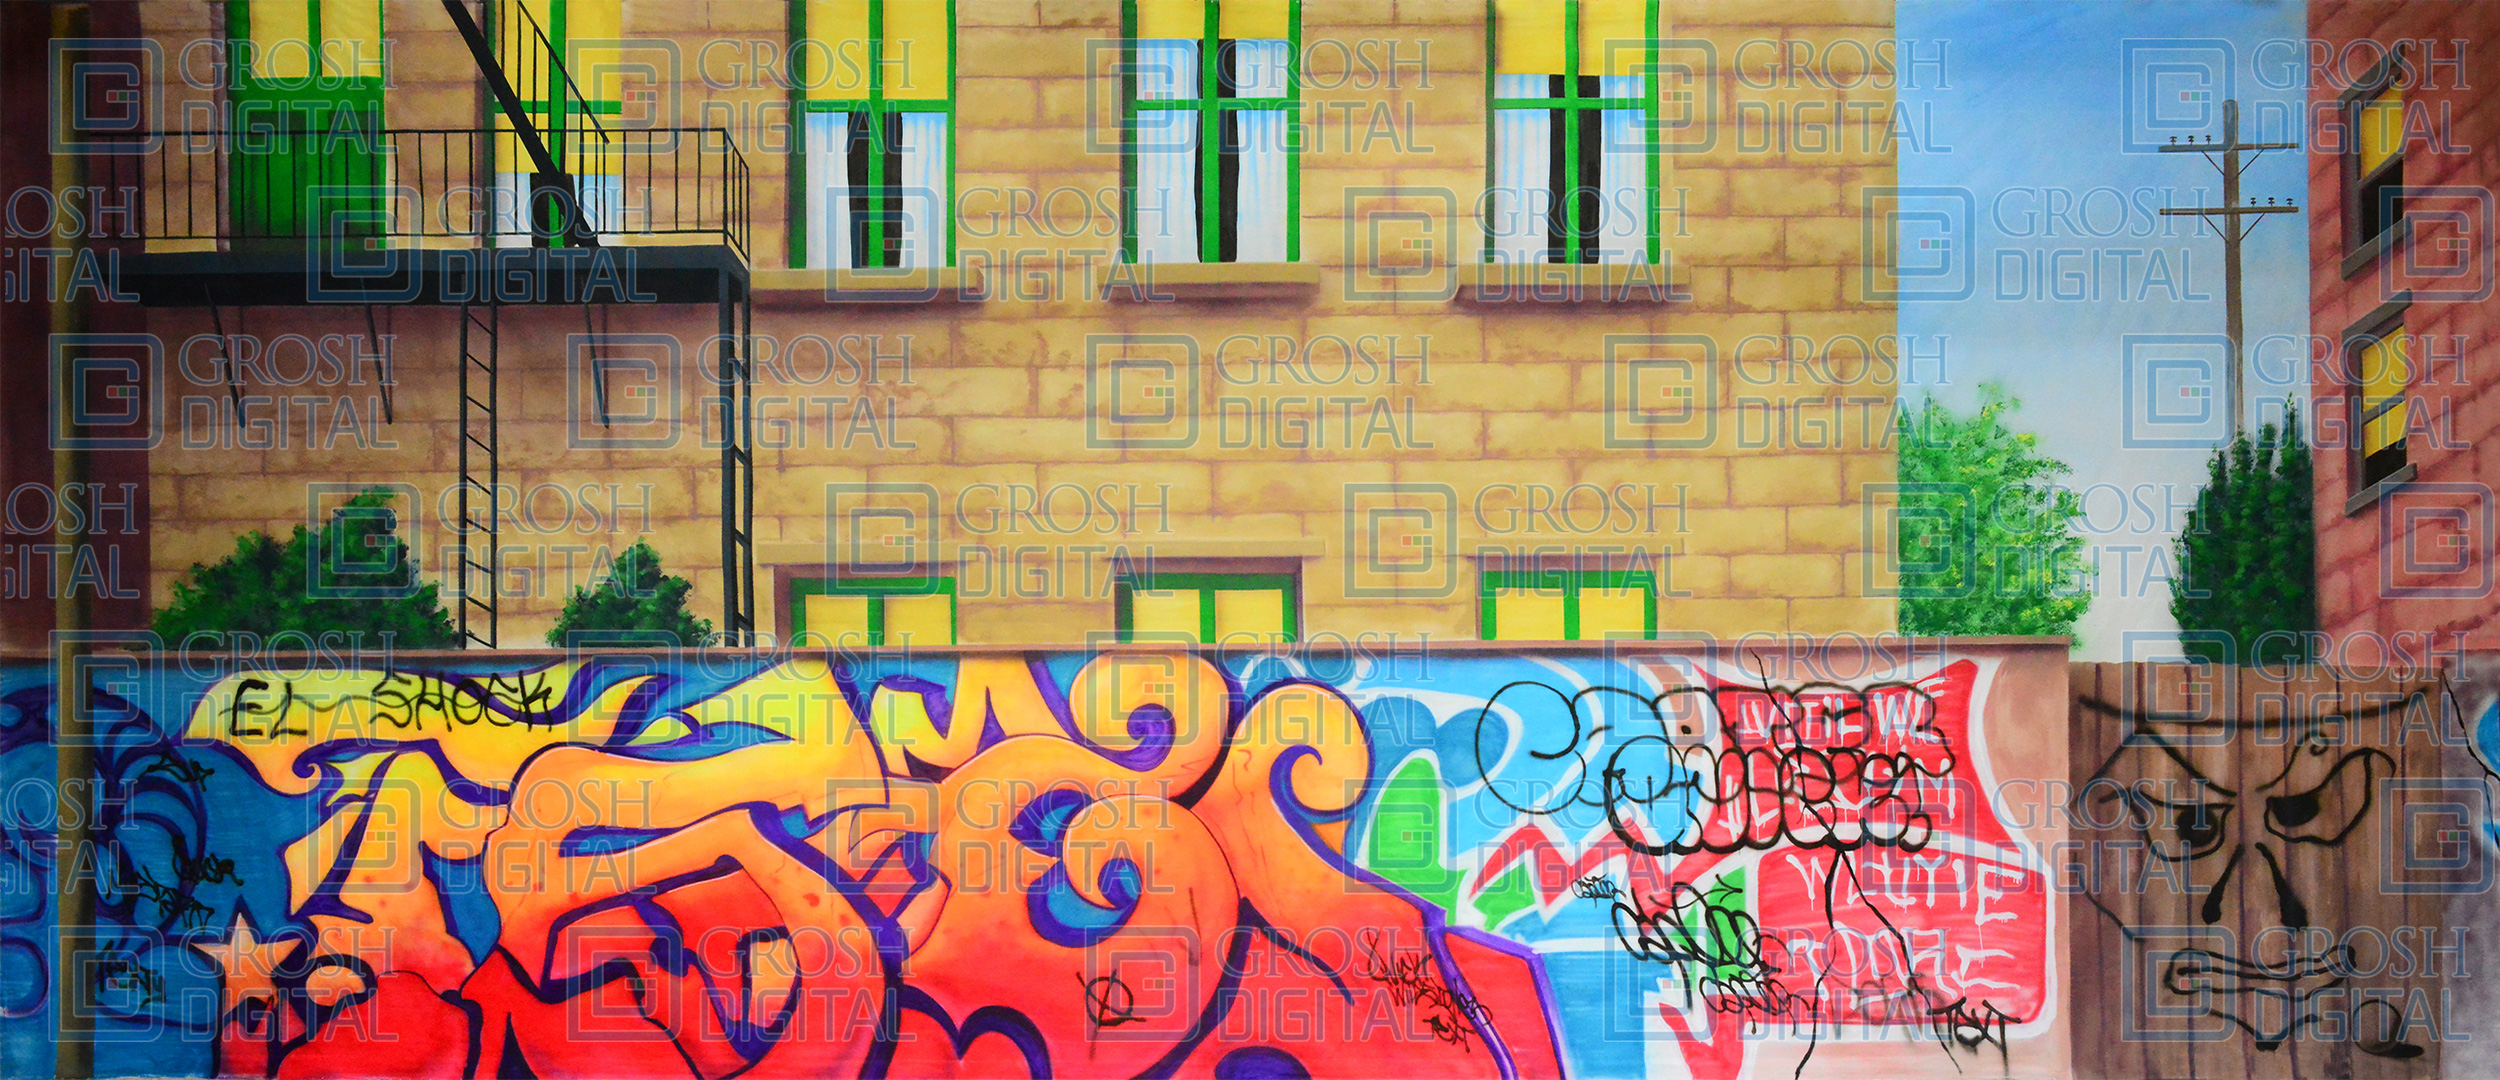 Alley with Graffiti Wall Projected Backdrops - Grosh Digital